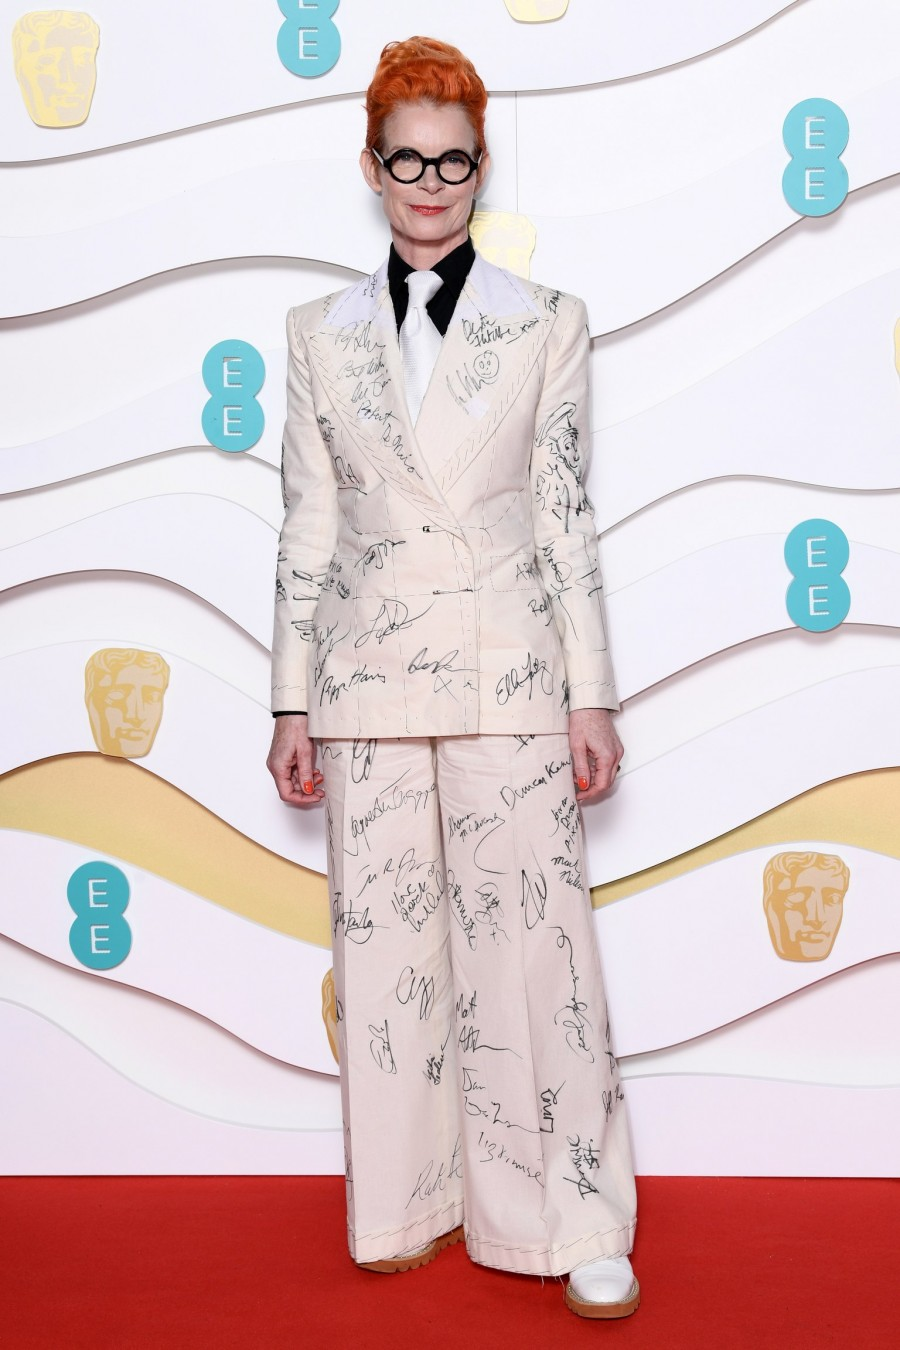 Sandy Powell in a suit designed by Ian Frazer Wallace – with the plan to auction it off once it was fully covered with signatures of celebrities.